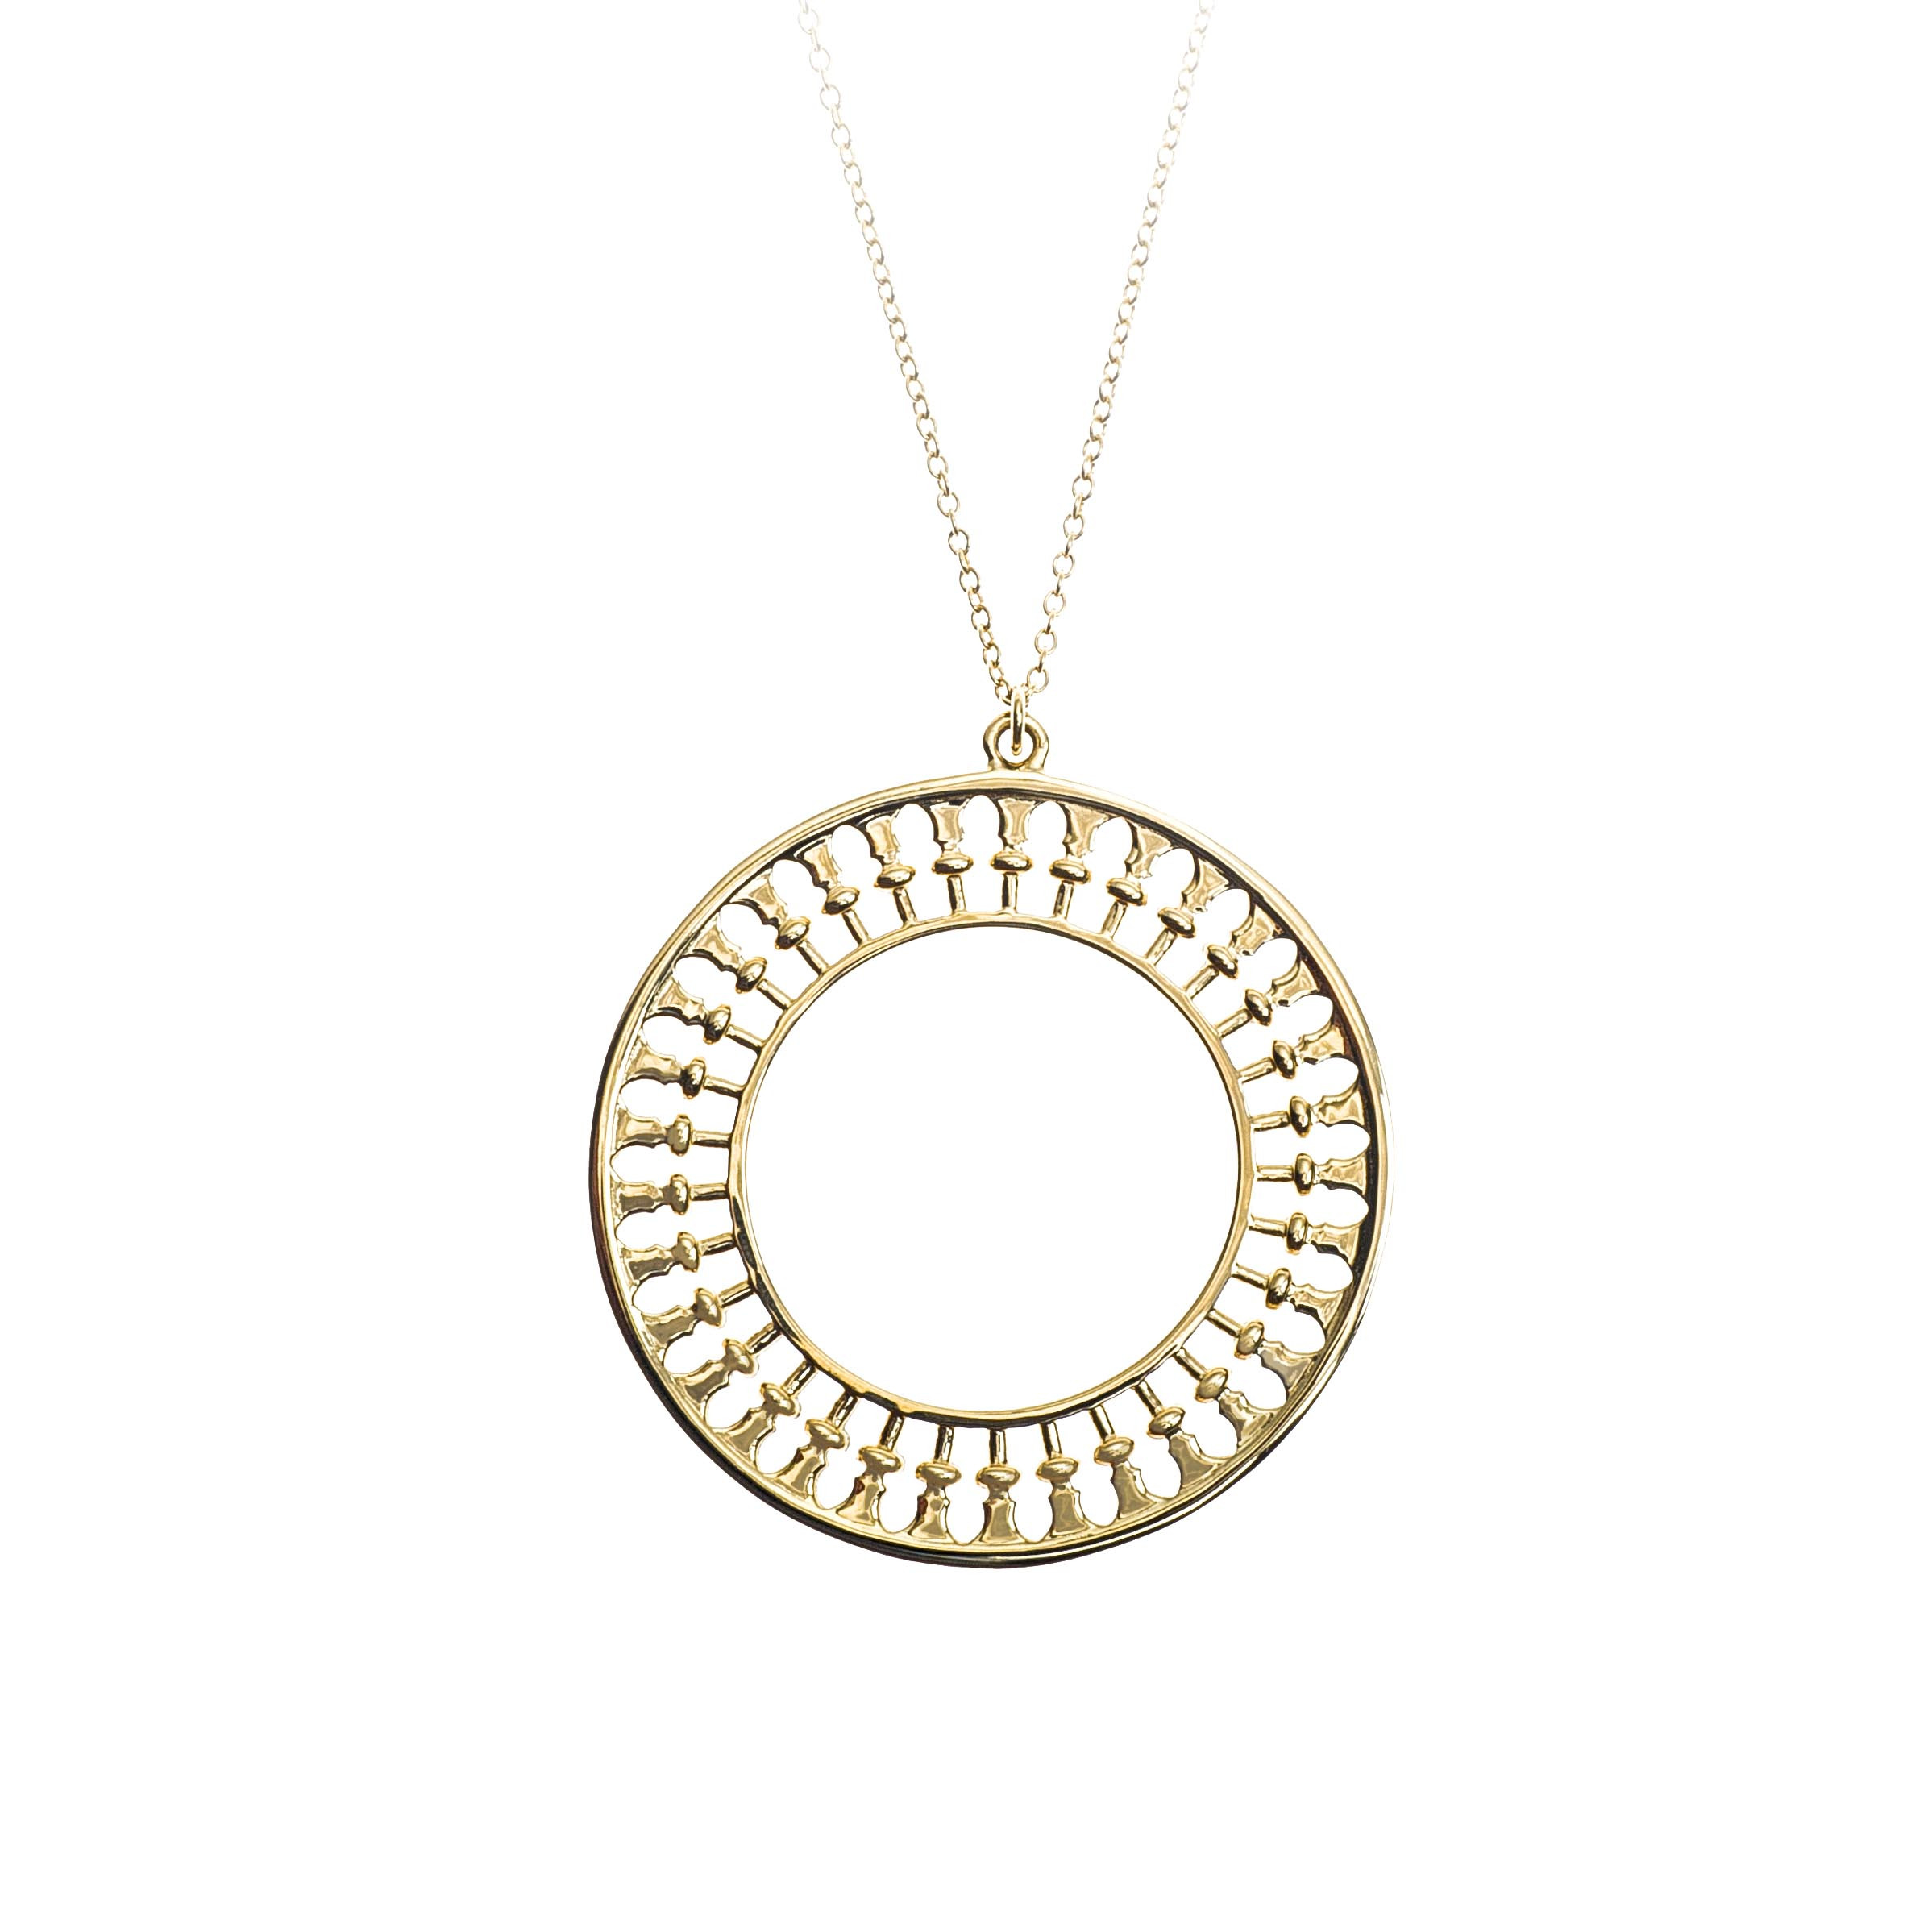 cc metallic lyst jewelry textured necklace gold in gallery medallion chanel pendant